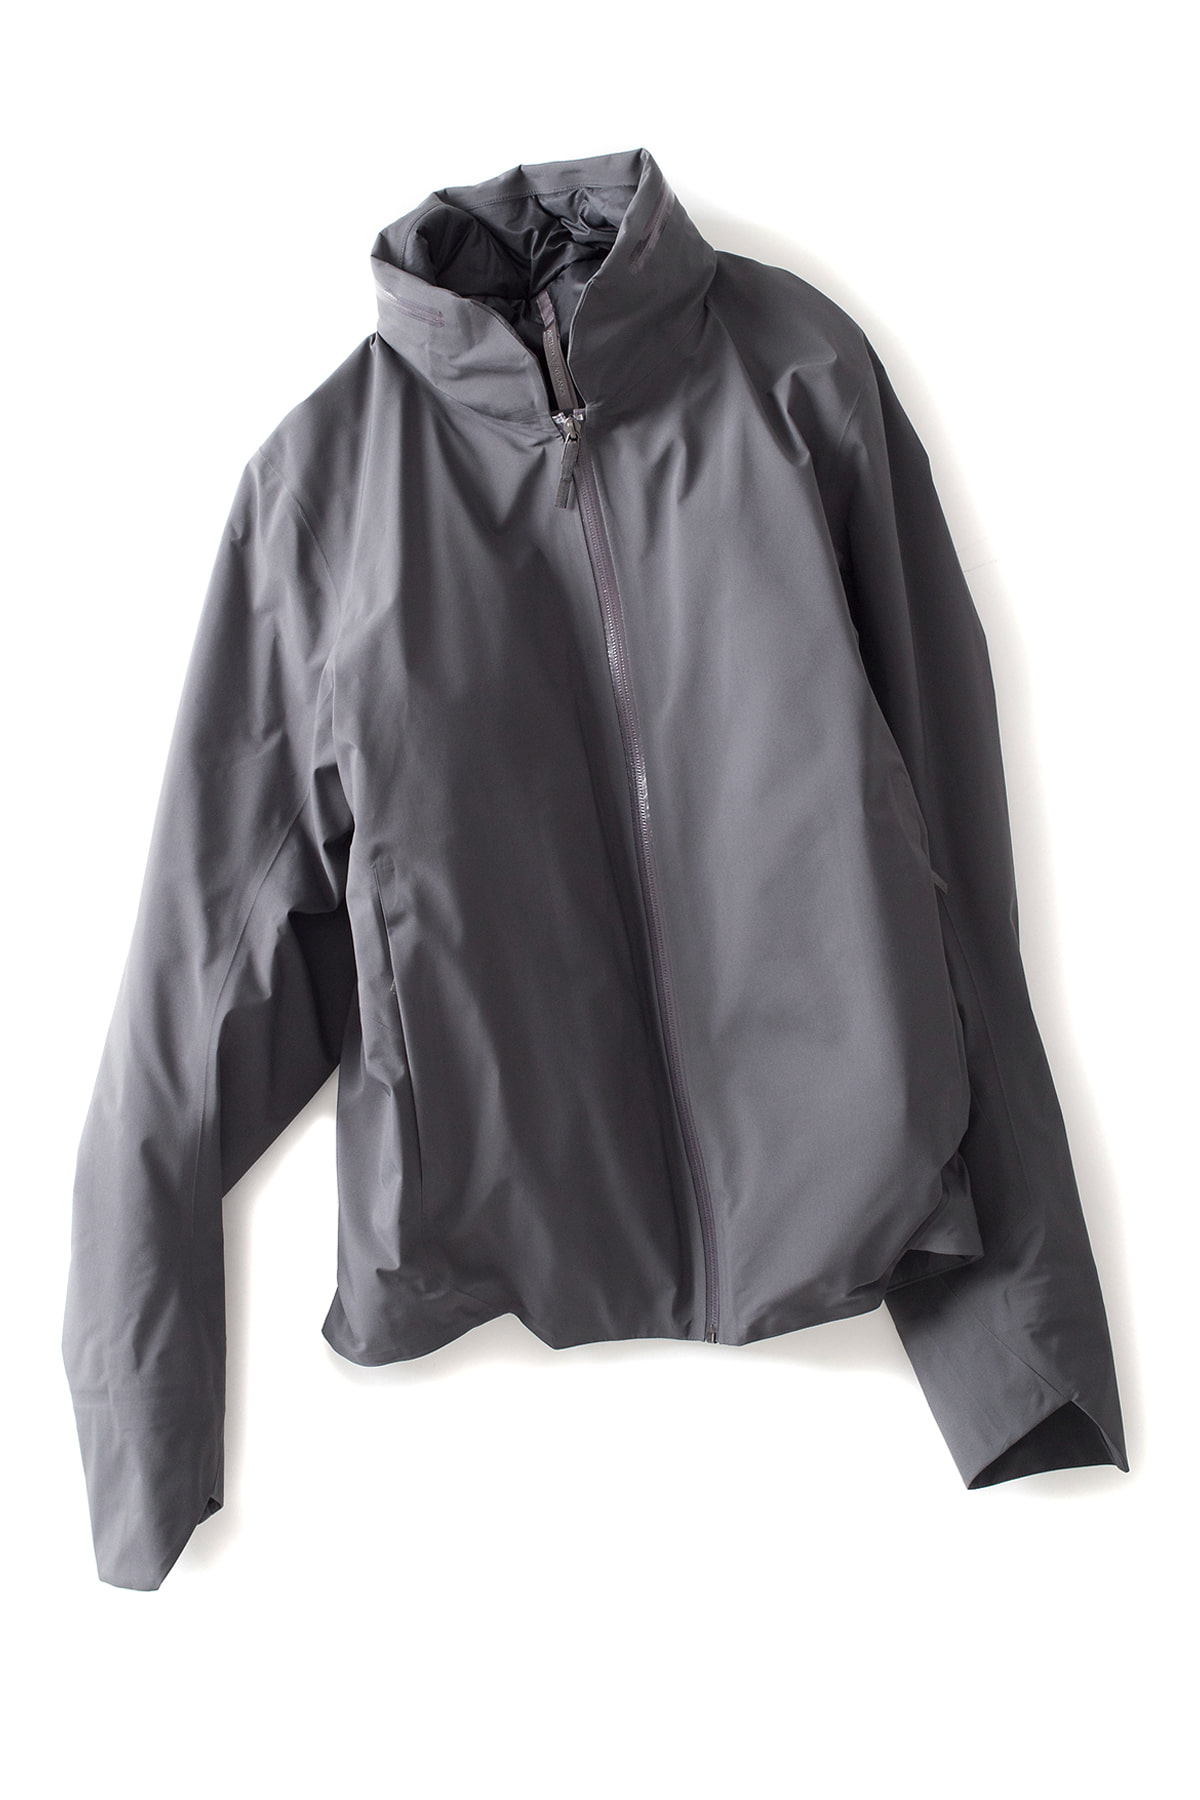 ARC'TERYX VEILANCE : ACHROM IS JACKET (Soot)